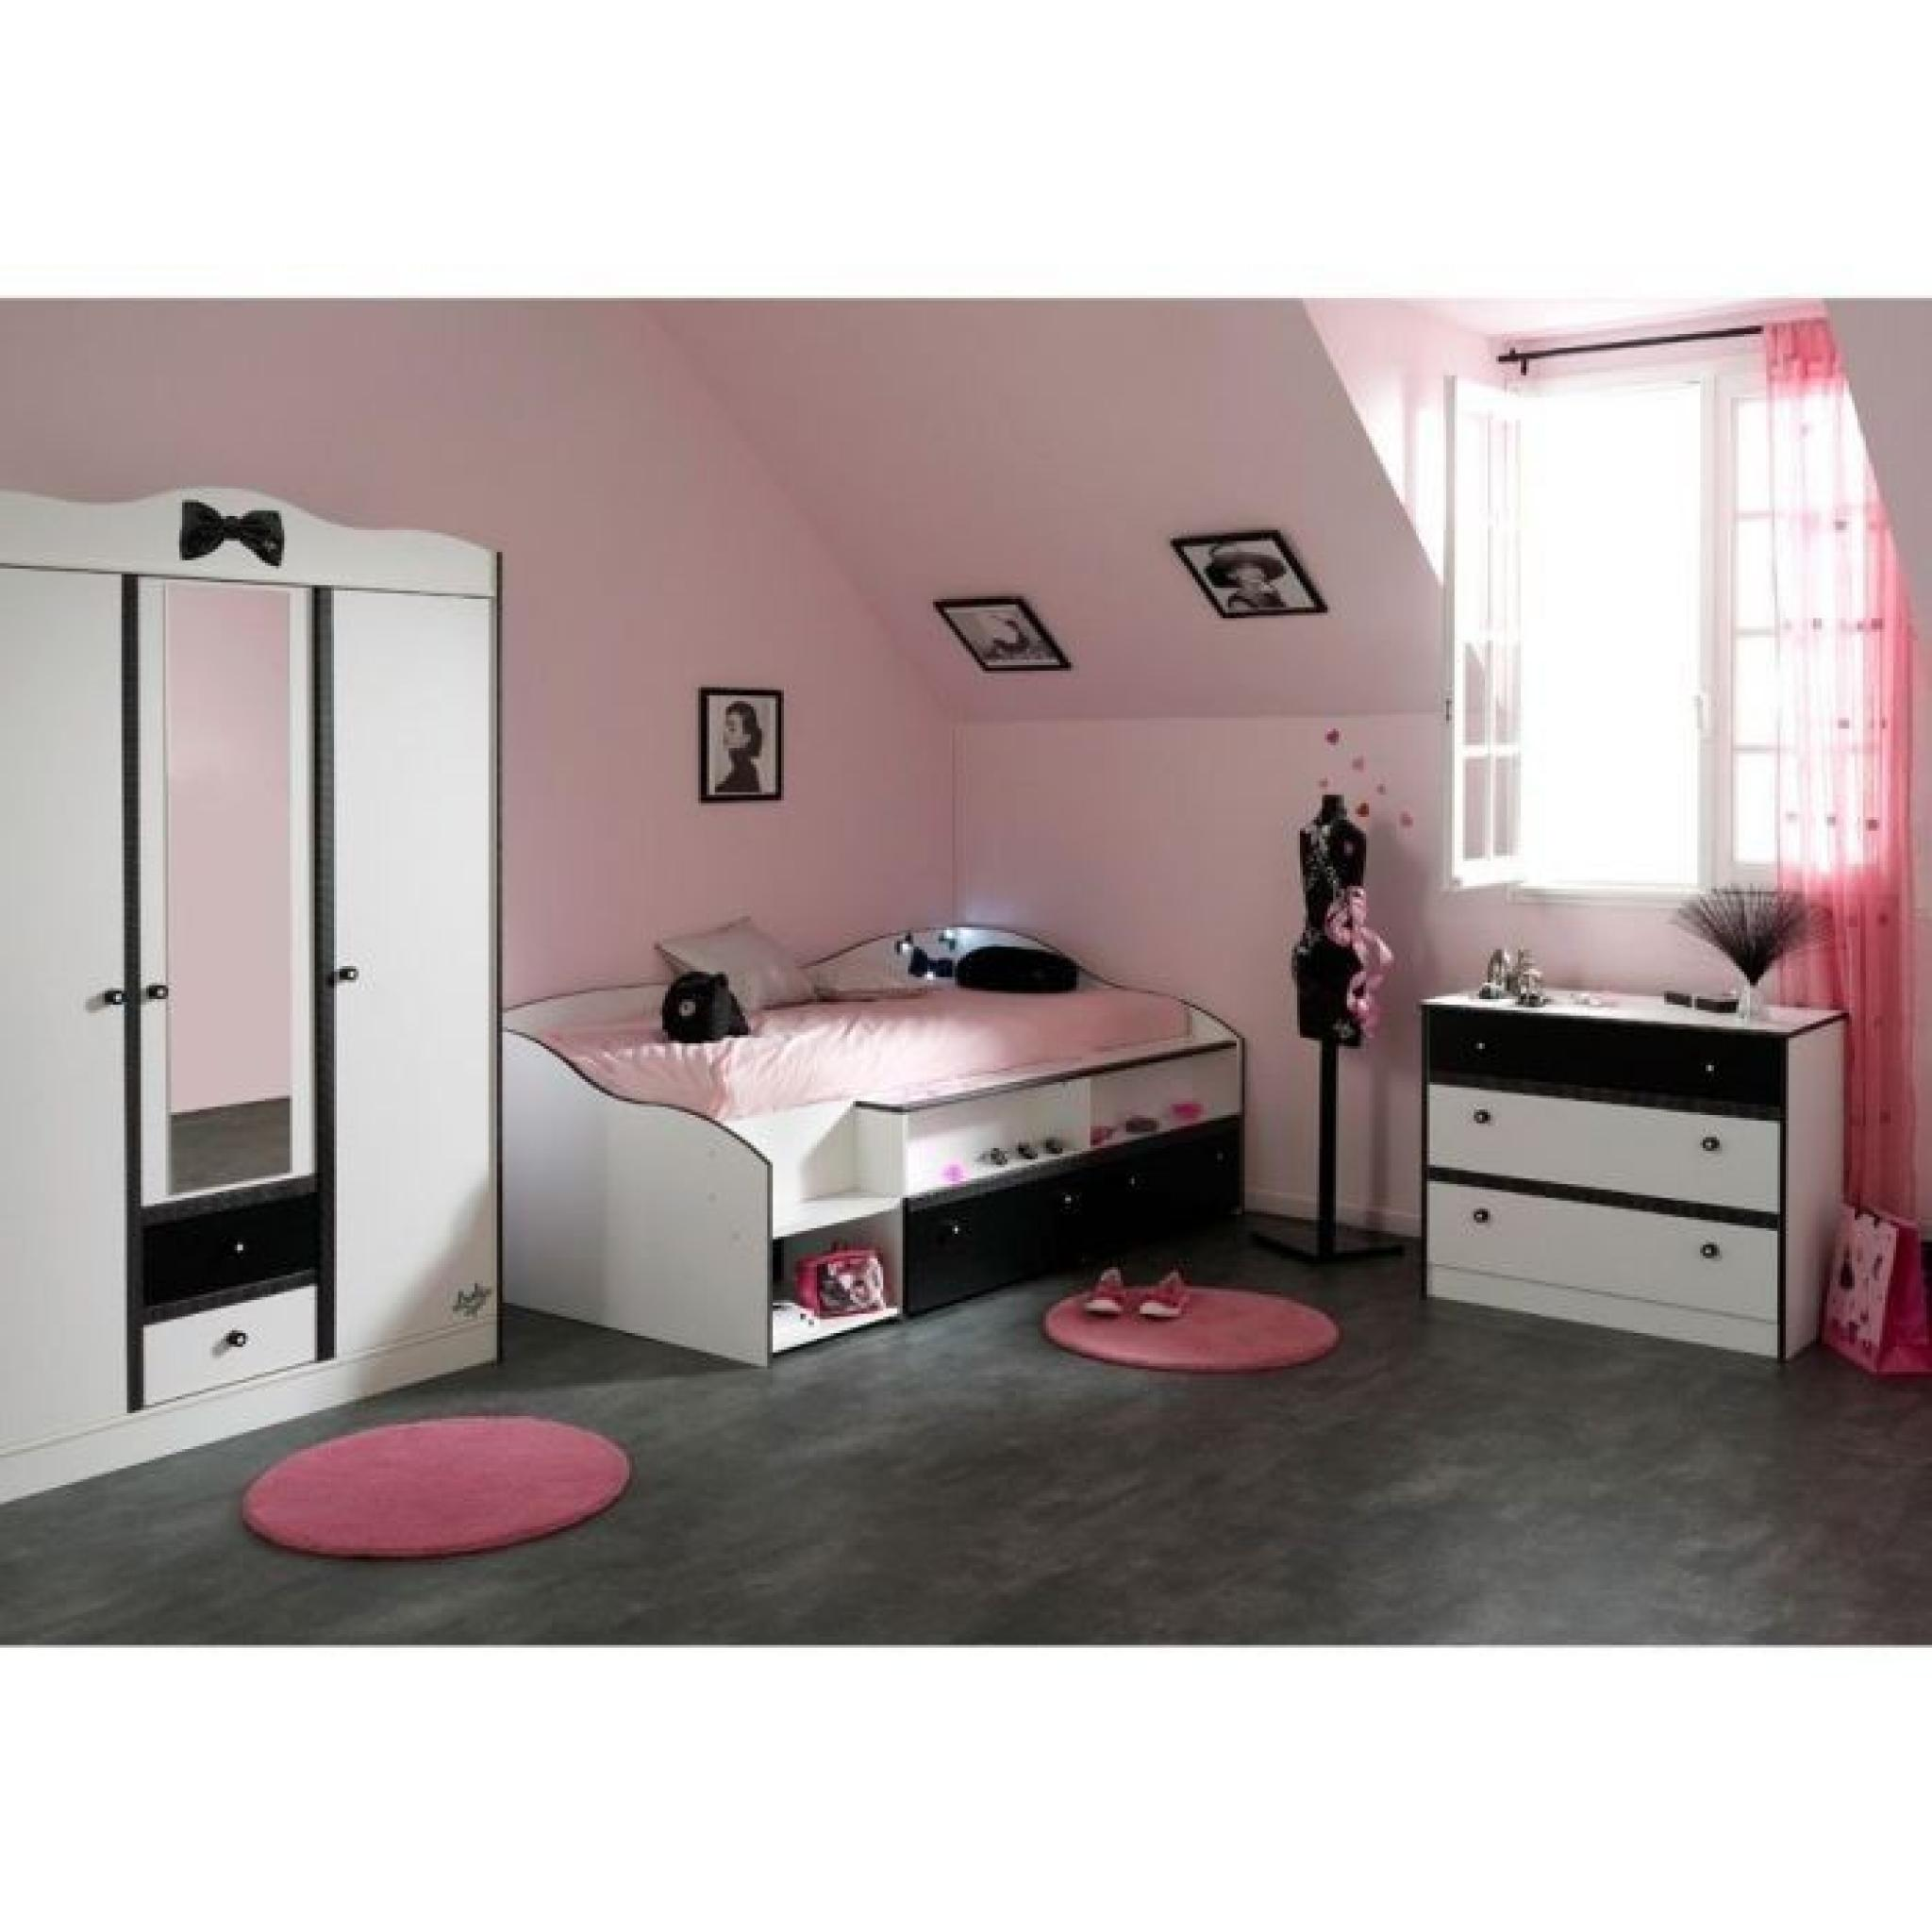 pretty chambre compl te enfant 90x190 blanc noir achat vente chambre complete pas cher. Black Bedroom Furniture Sets. Home Design Ideas